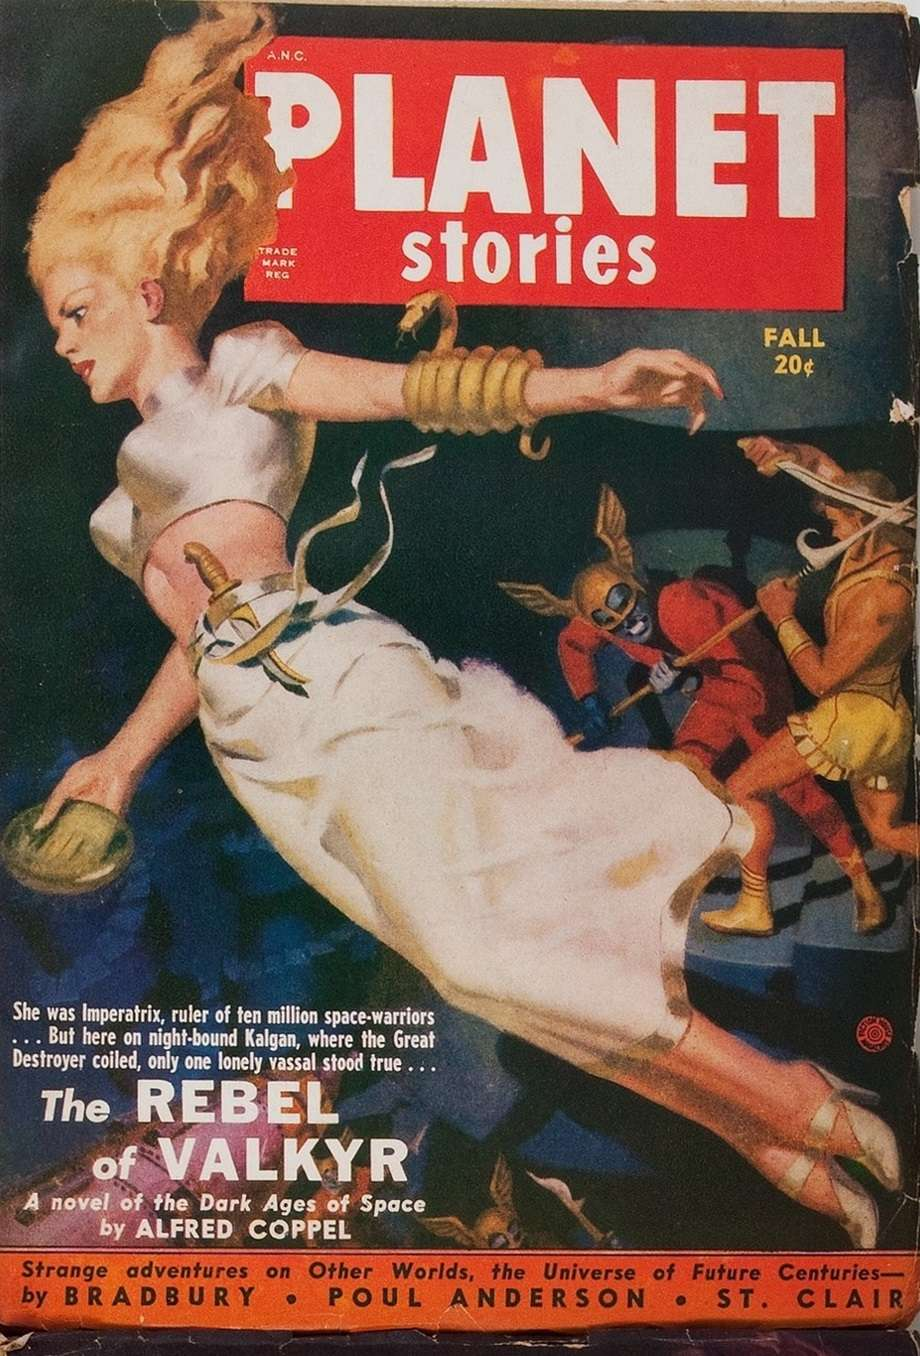 Comic Book Cover For Planet Stories v04 08 - The Rebel of Valkyr - Alfred Coppel, Jr.